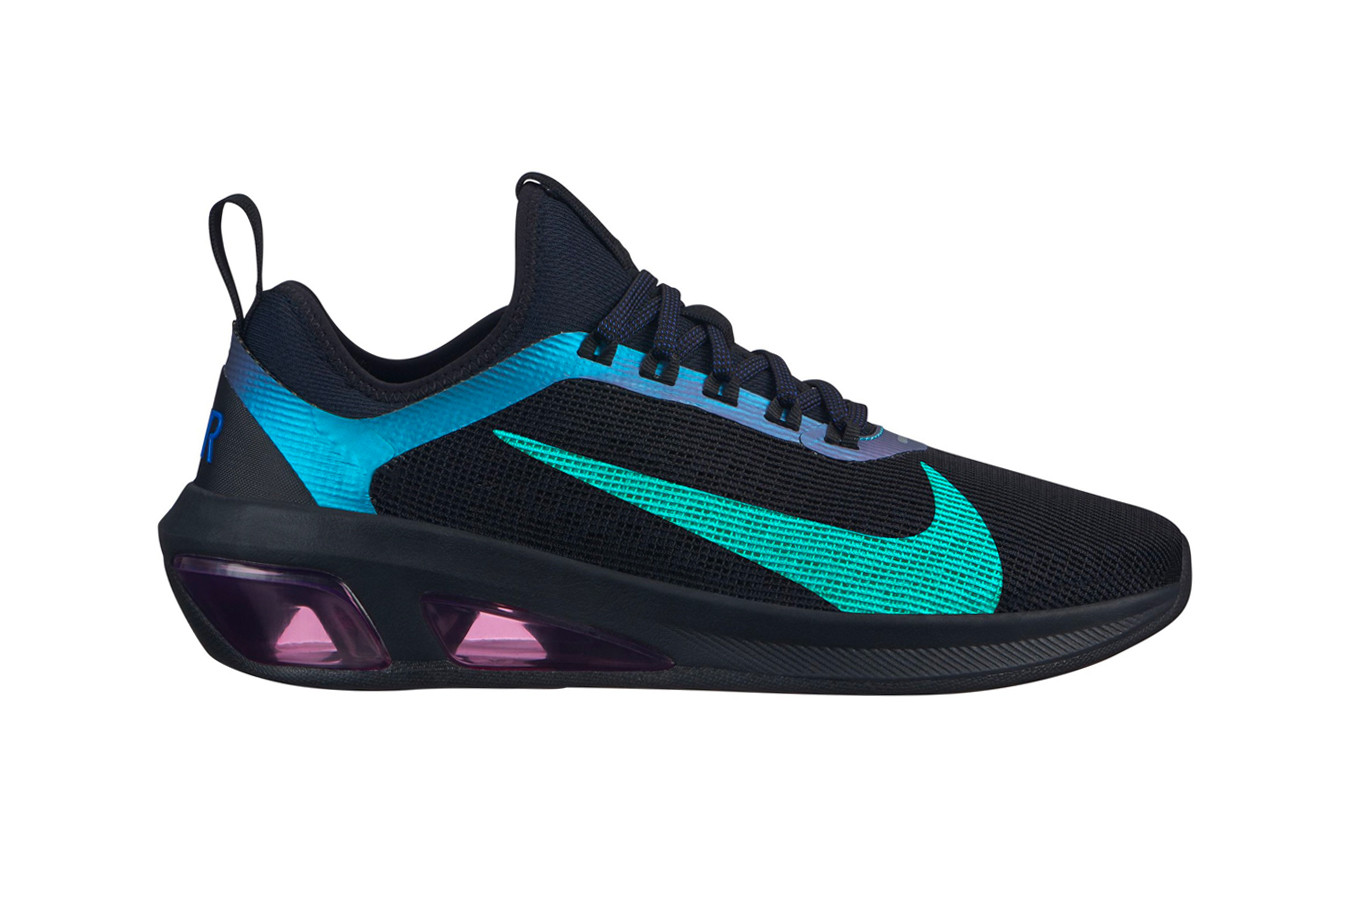 half off 4251a a6778 Get the First Look at Nike's Next Air Max Silhouette, The ...